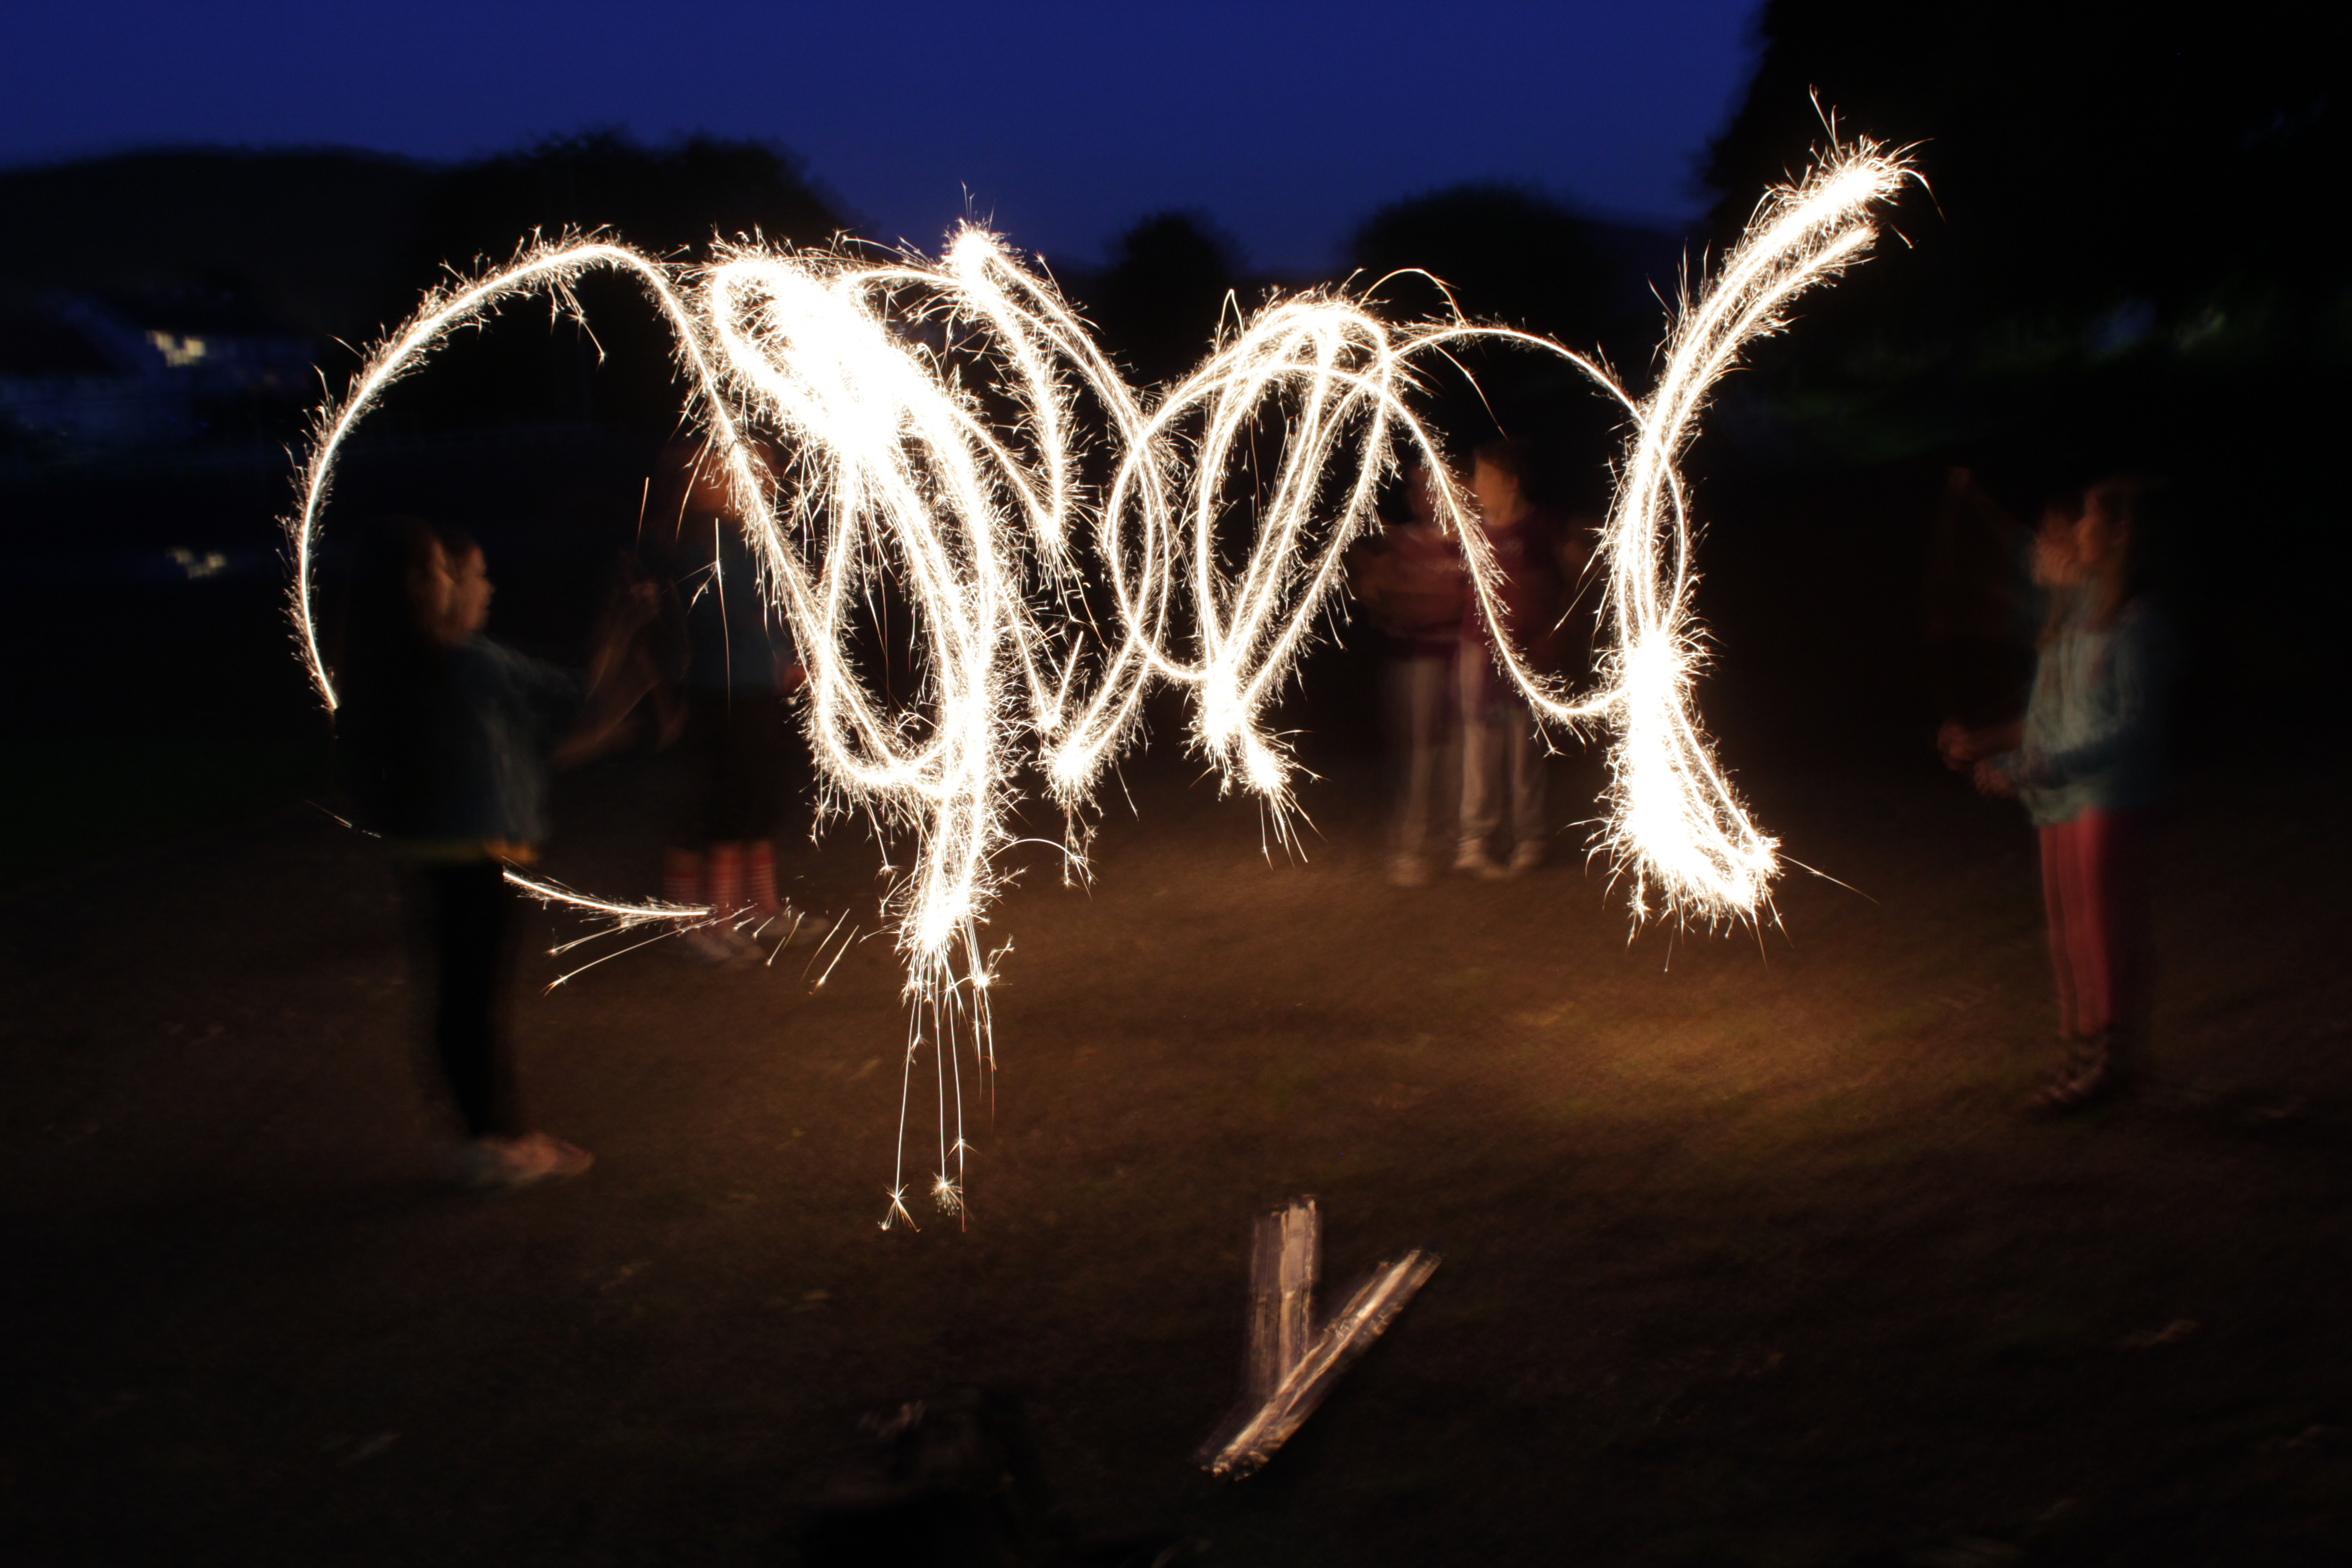 Kids Do Light Painting With Sparklers Cc0 Photo